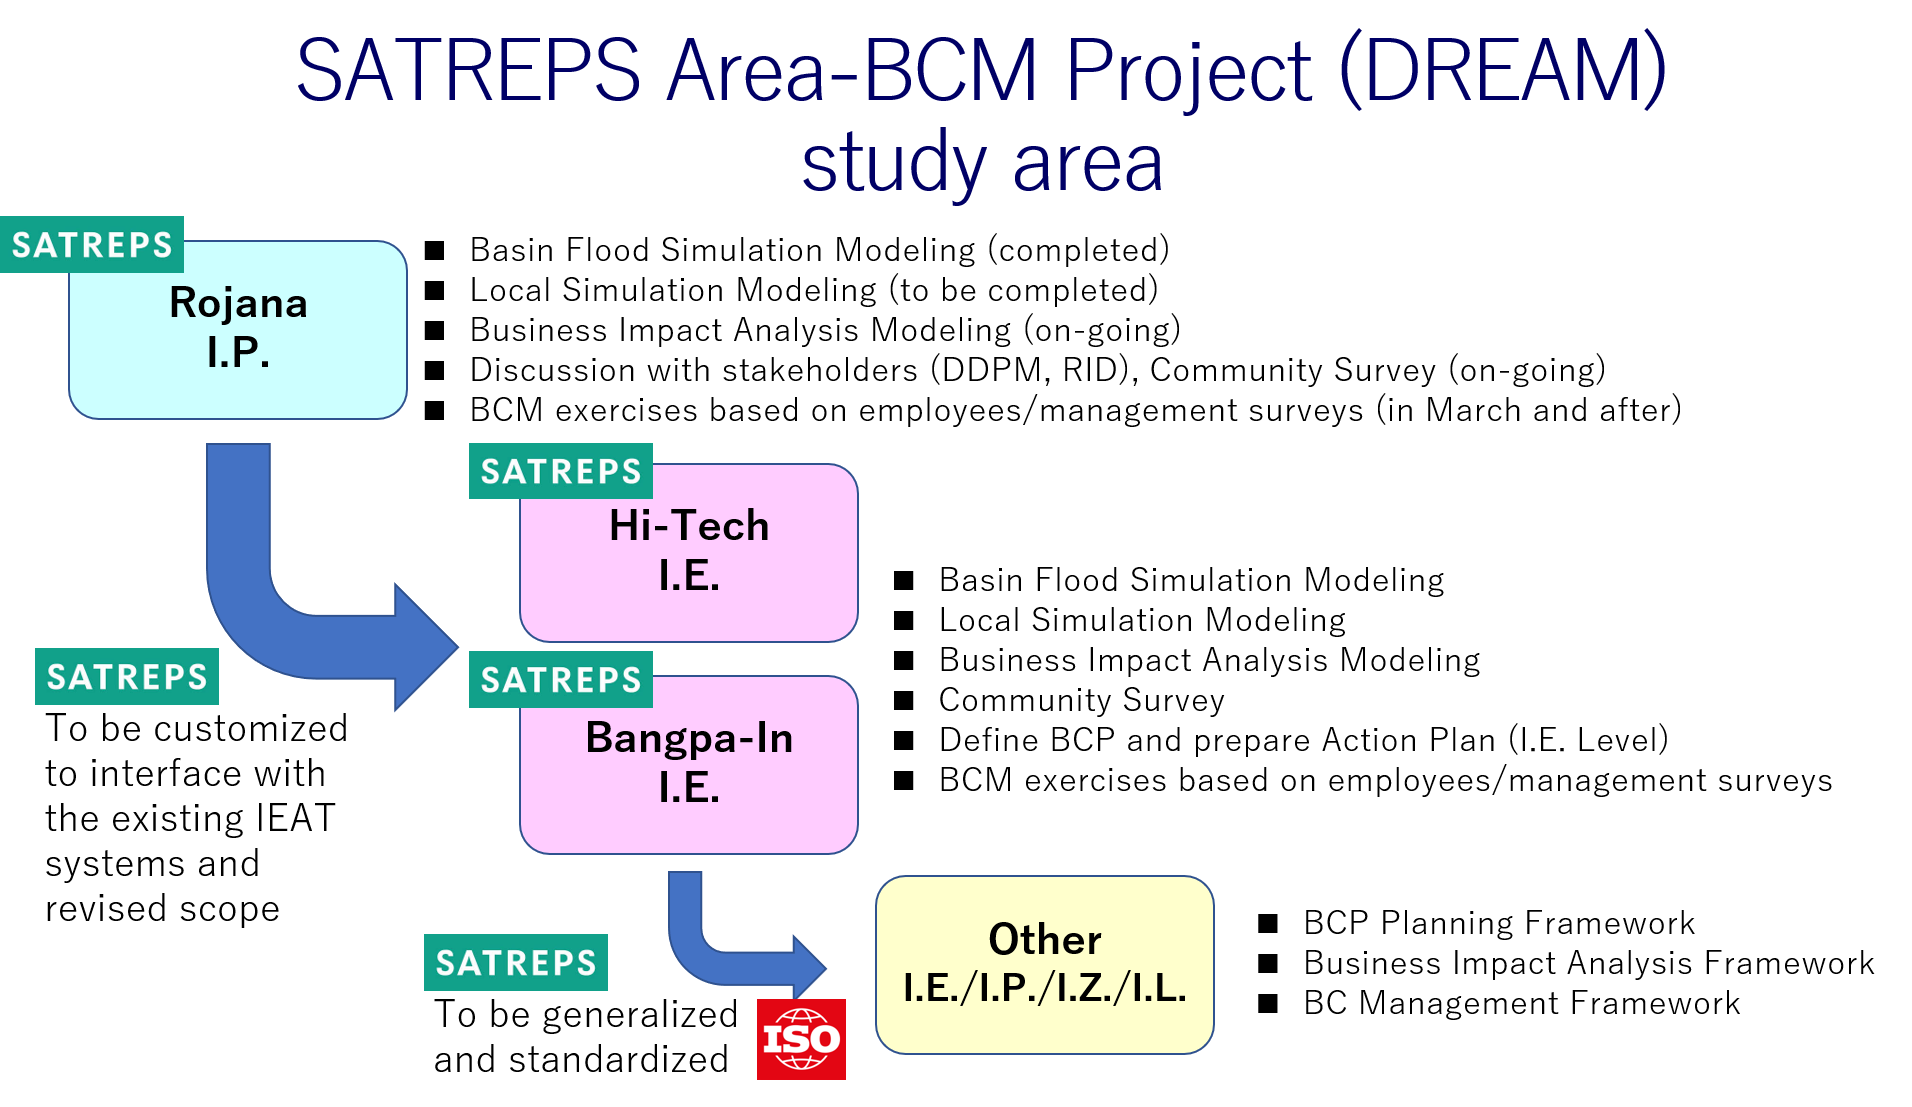 Current Progress of SATREPS Area-BCM Project (DREAM)